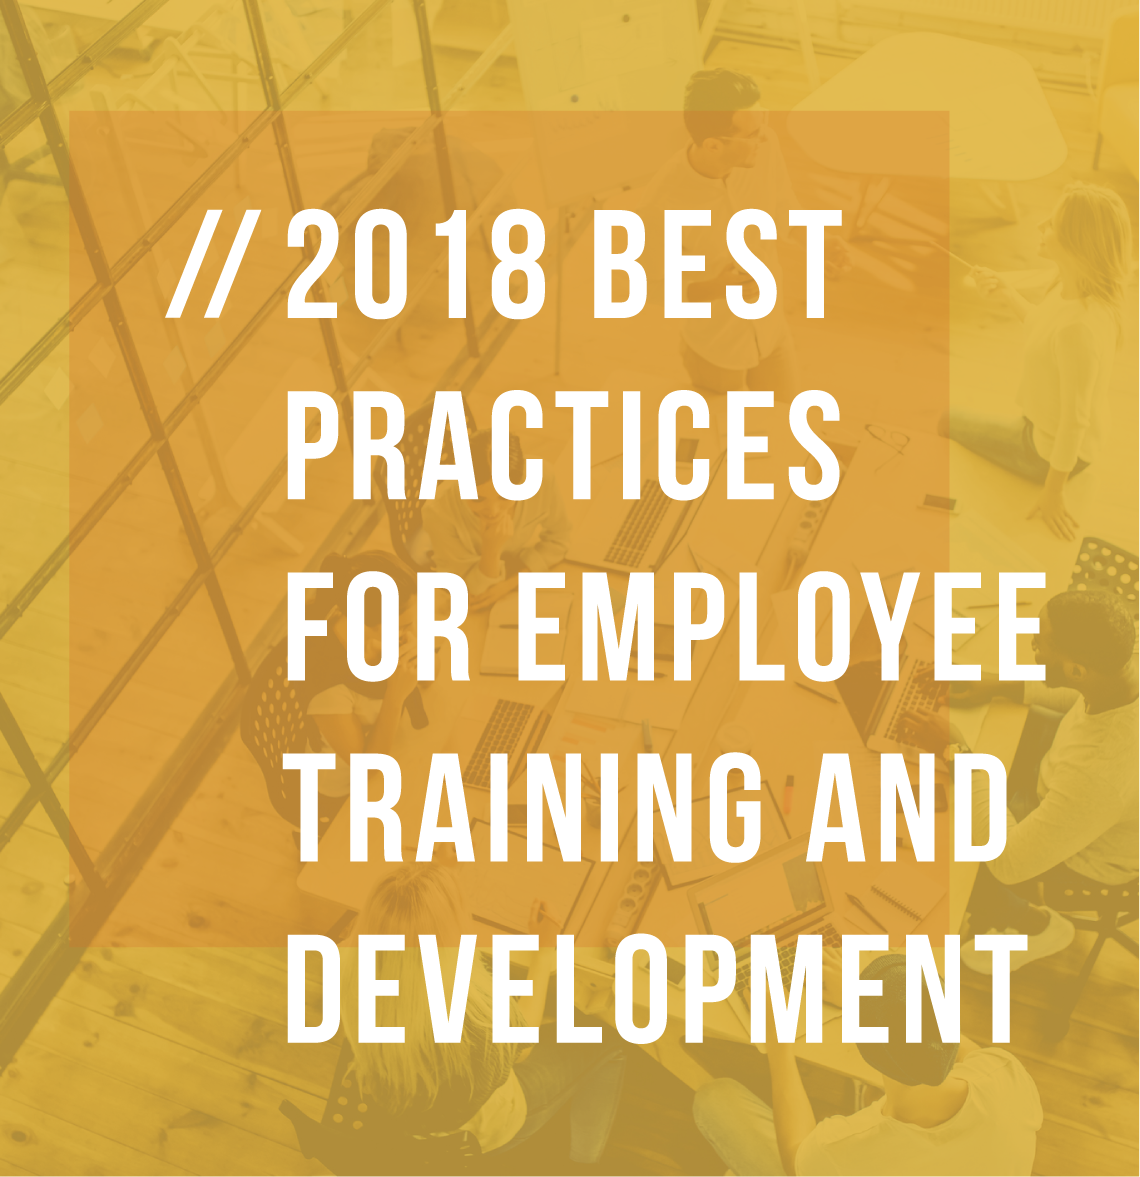 2018 Best Practices for Employee Trainin...